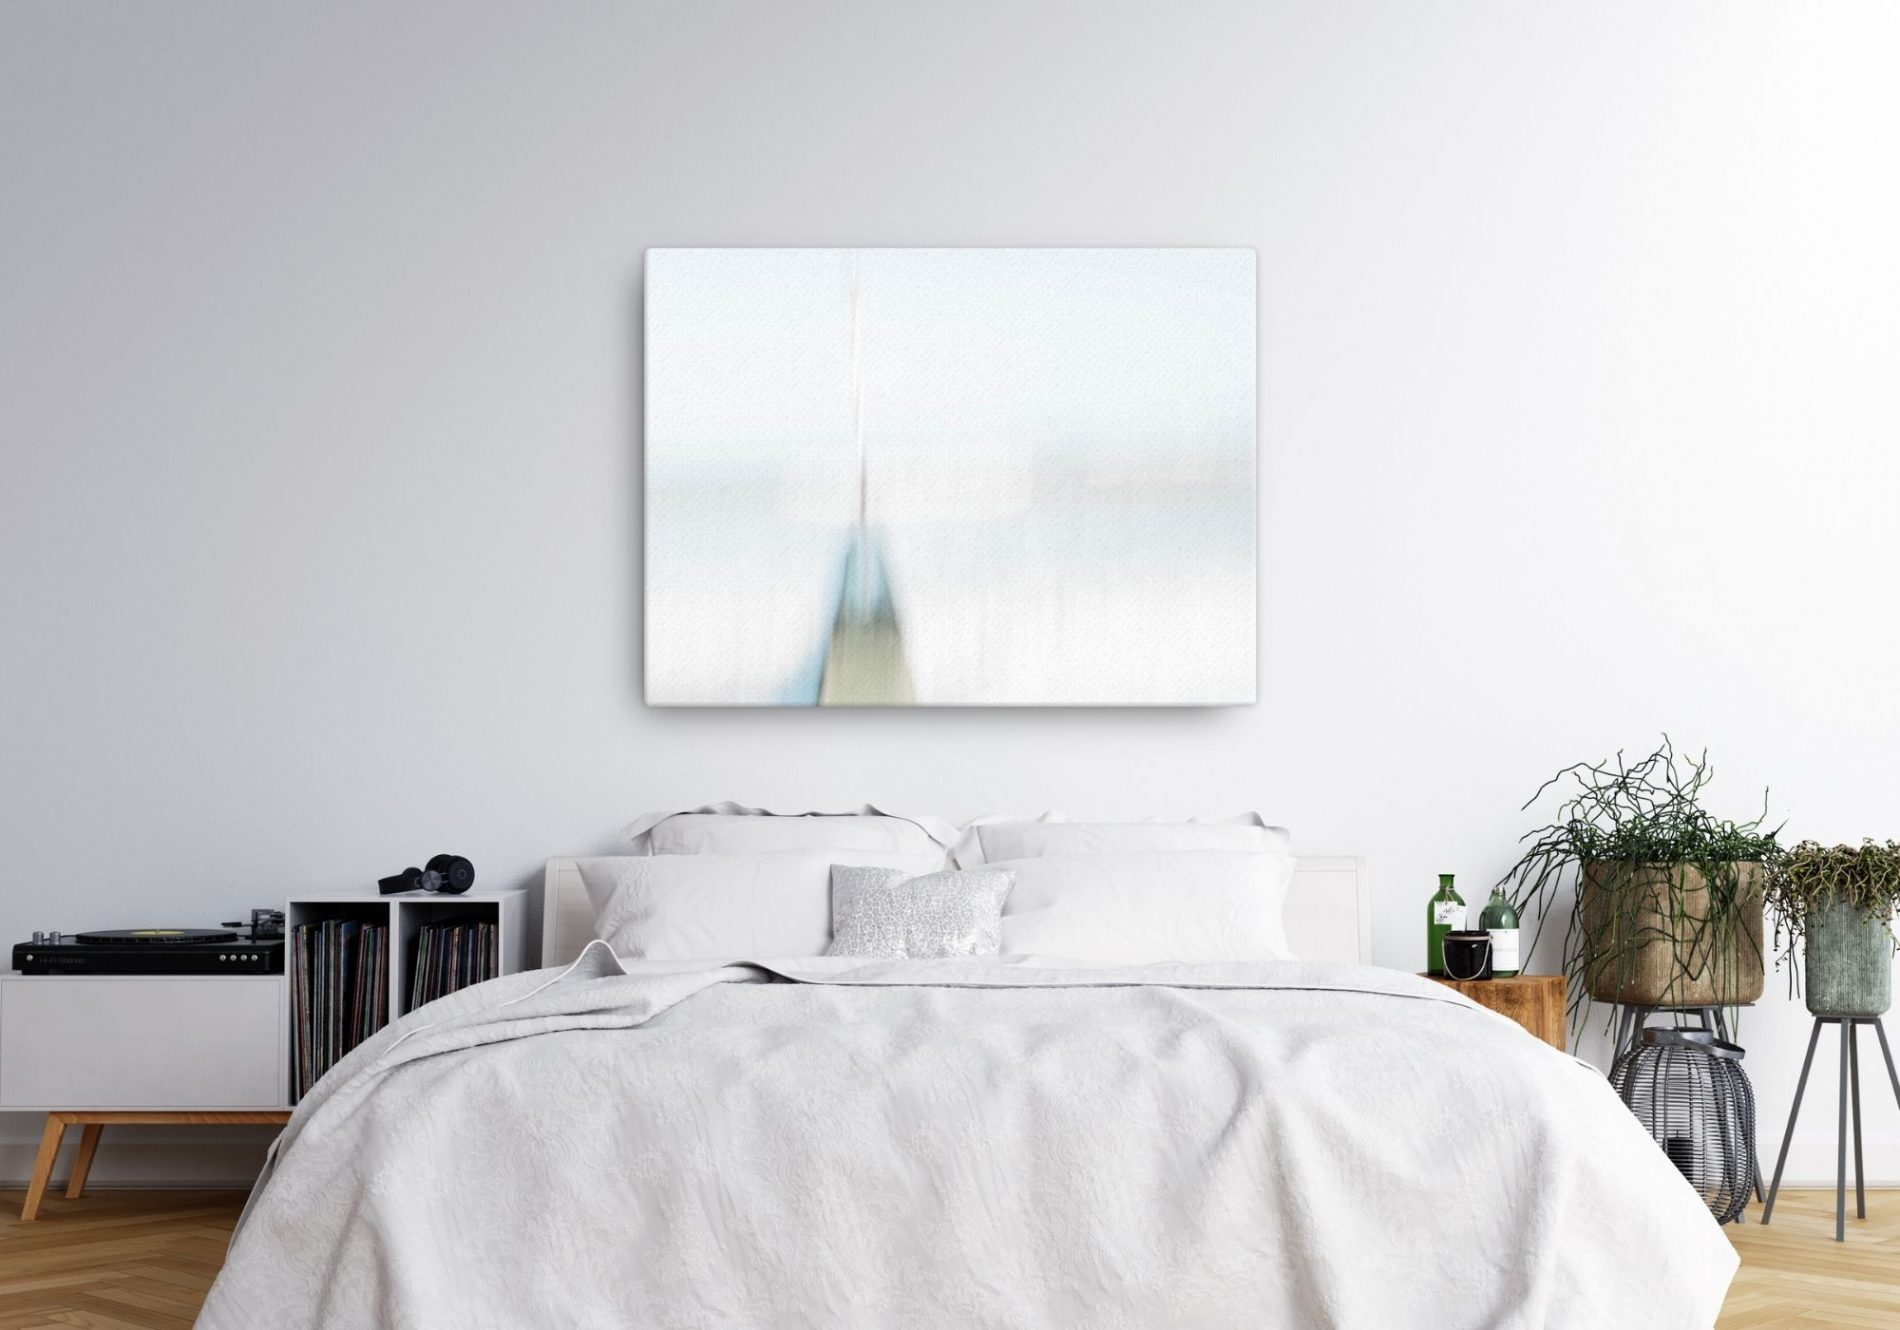 White abstract canvas above bed in bedroom. Looks toward the horizon and perfect for meditation. Forward motion by Rebecca Portsmouth.